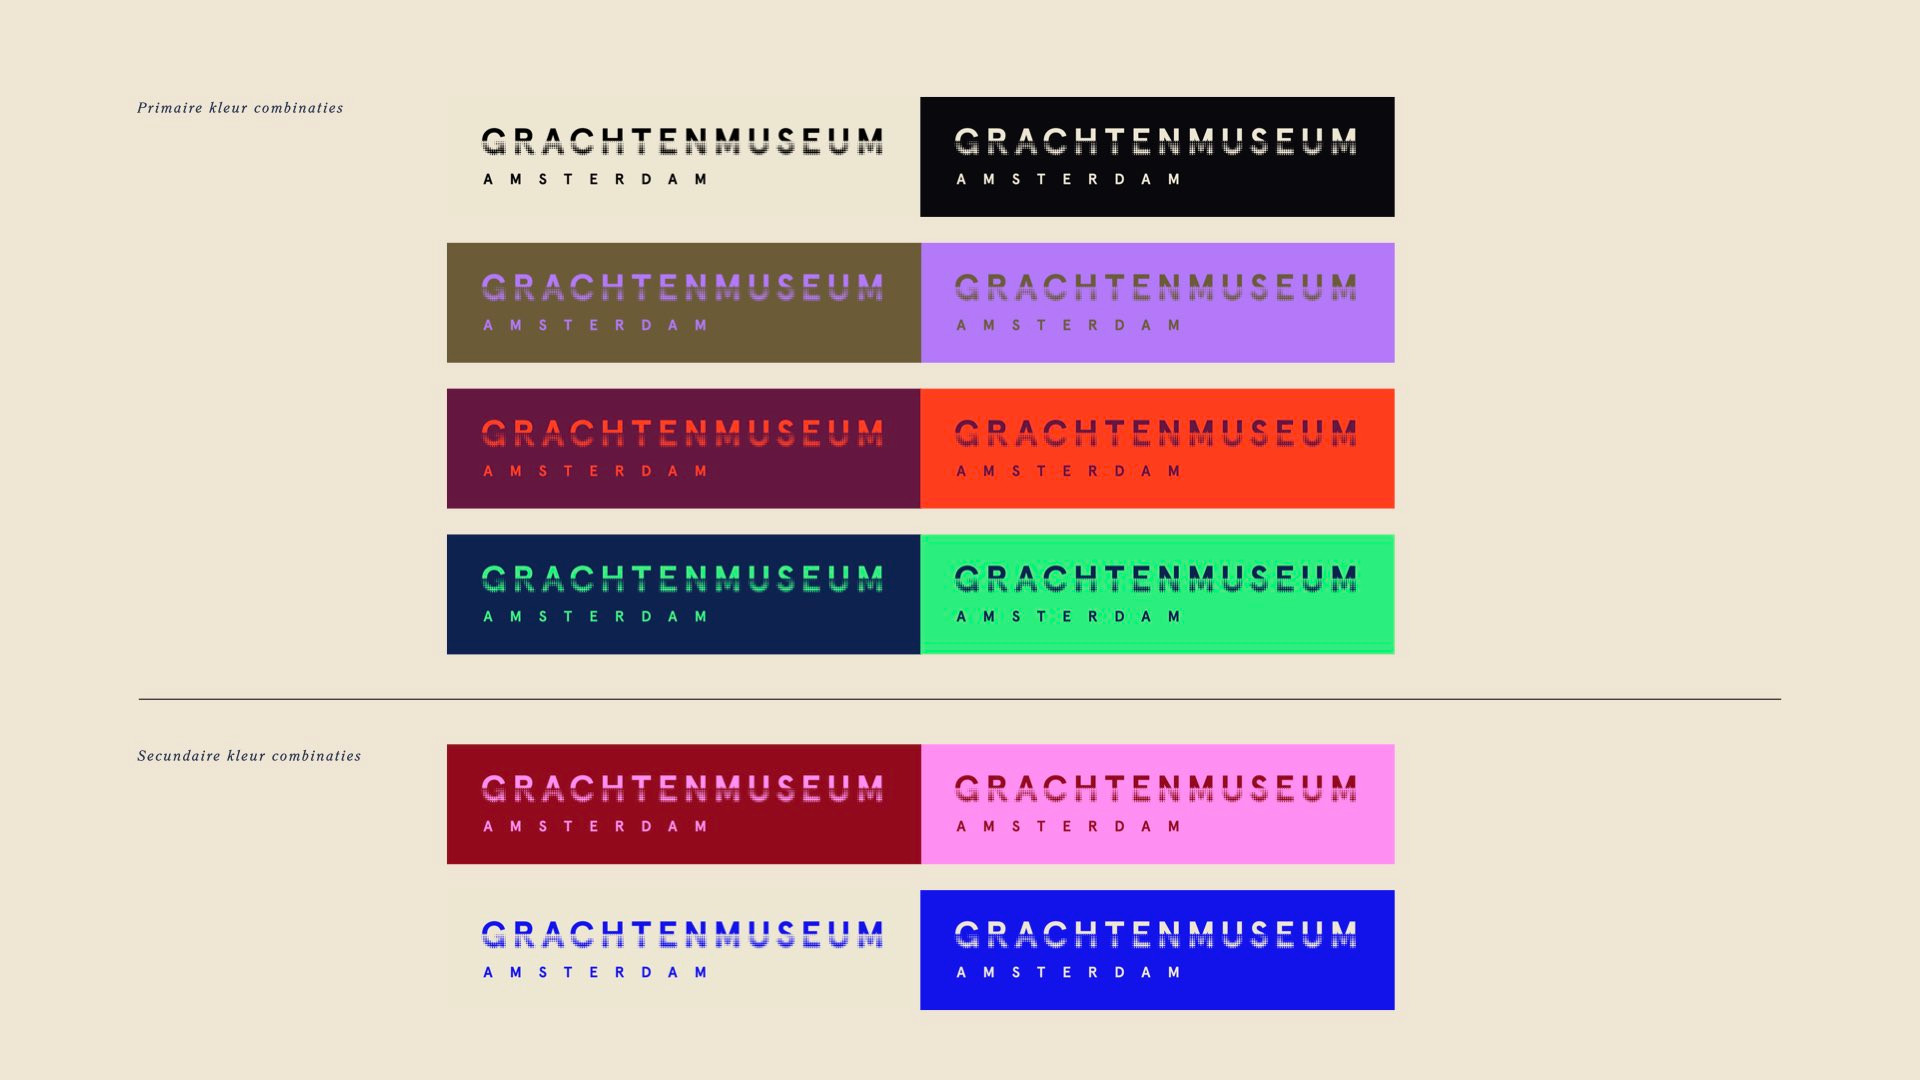 GRACHTENMUSEUM_SLIDES_WIX.009.jpeg